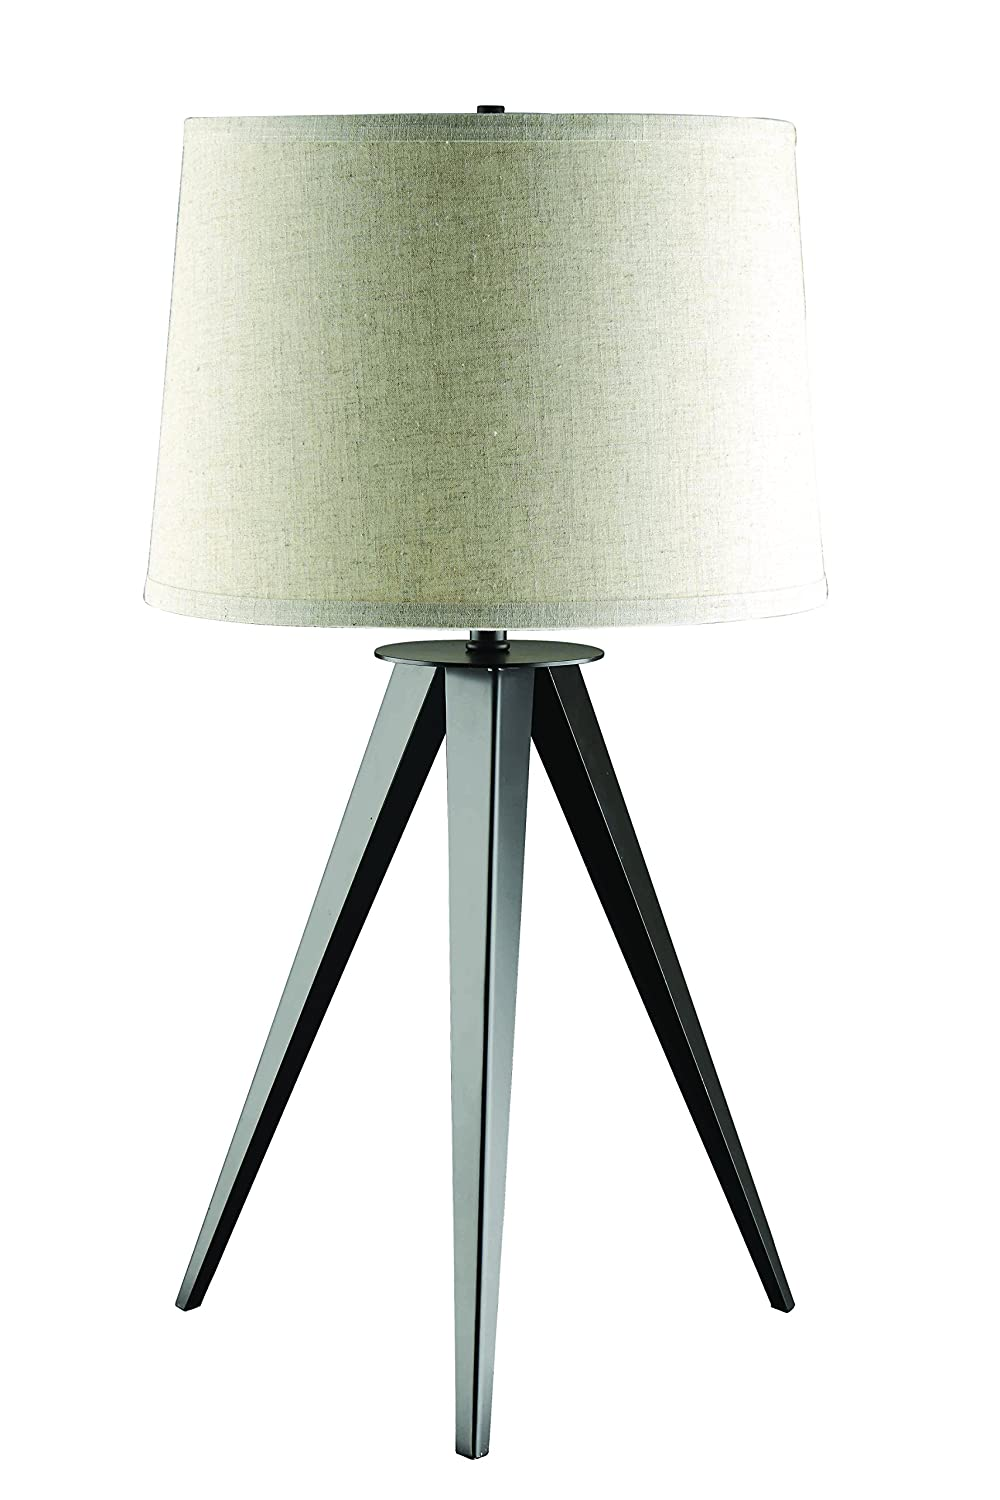 CDM product Coaster Home Furnishings 901644 Table Lamp, Mid-Century Tripod Design big image